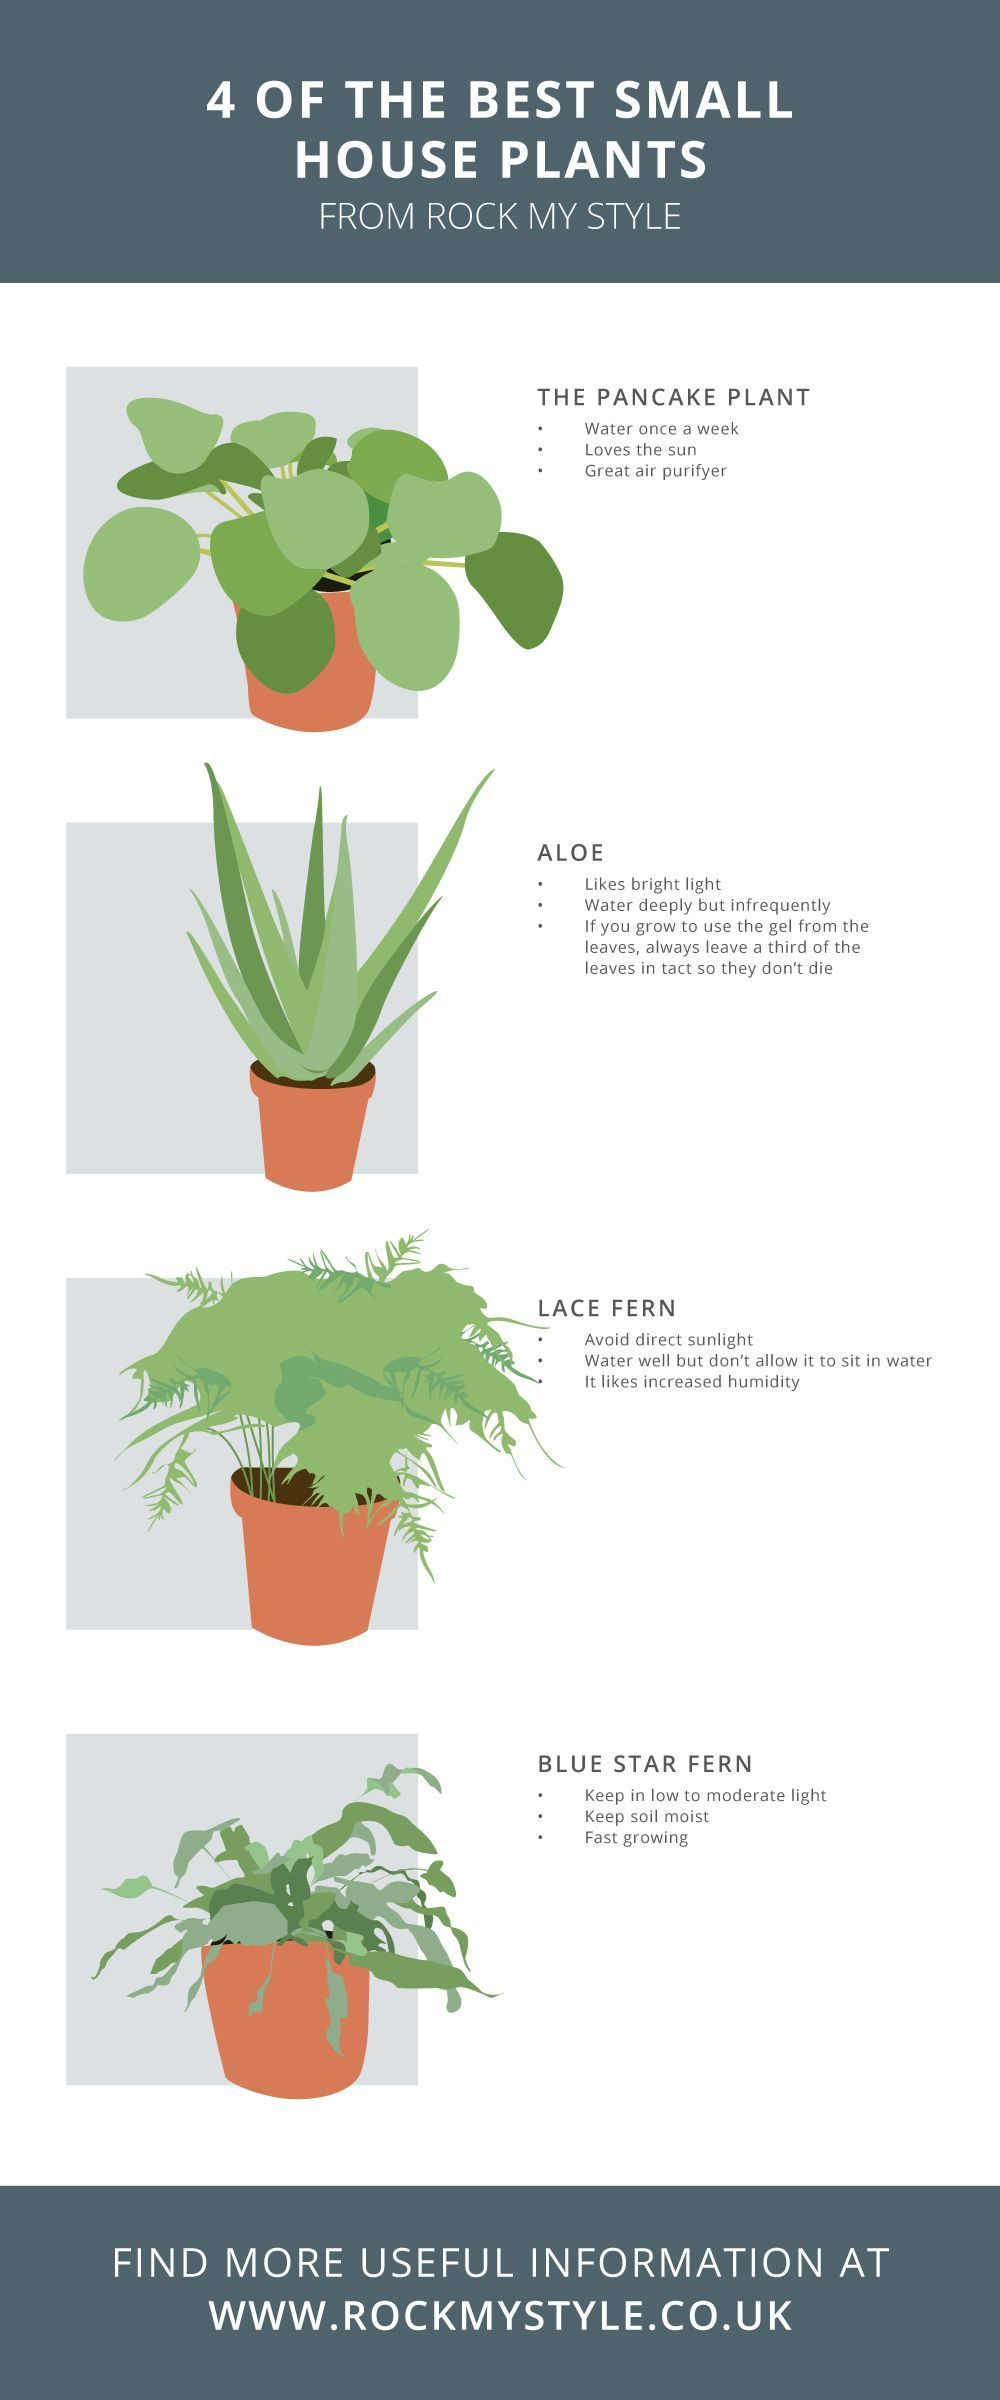 The Best Small House Plants Easyhouseplants 4 Of The Best House Plants Small H The Best Small House Plants Easyhou House Plants Plants Bathroom Plants